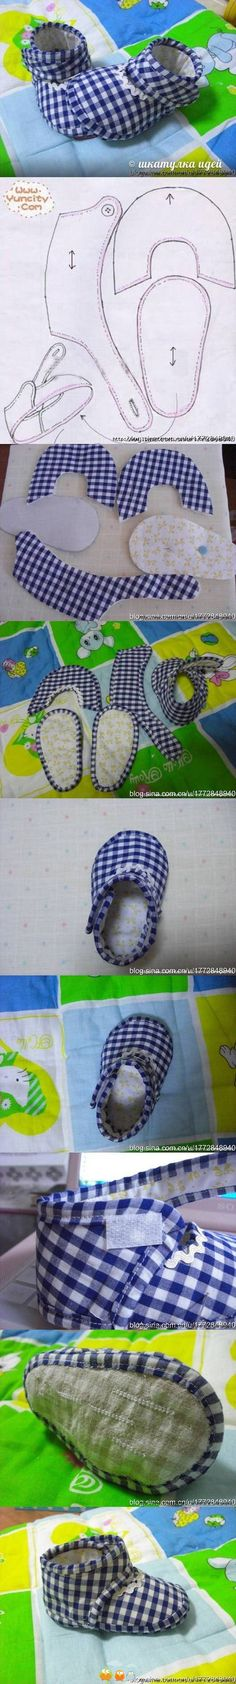 How to make soft baby shoes